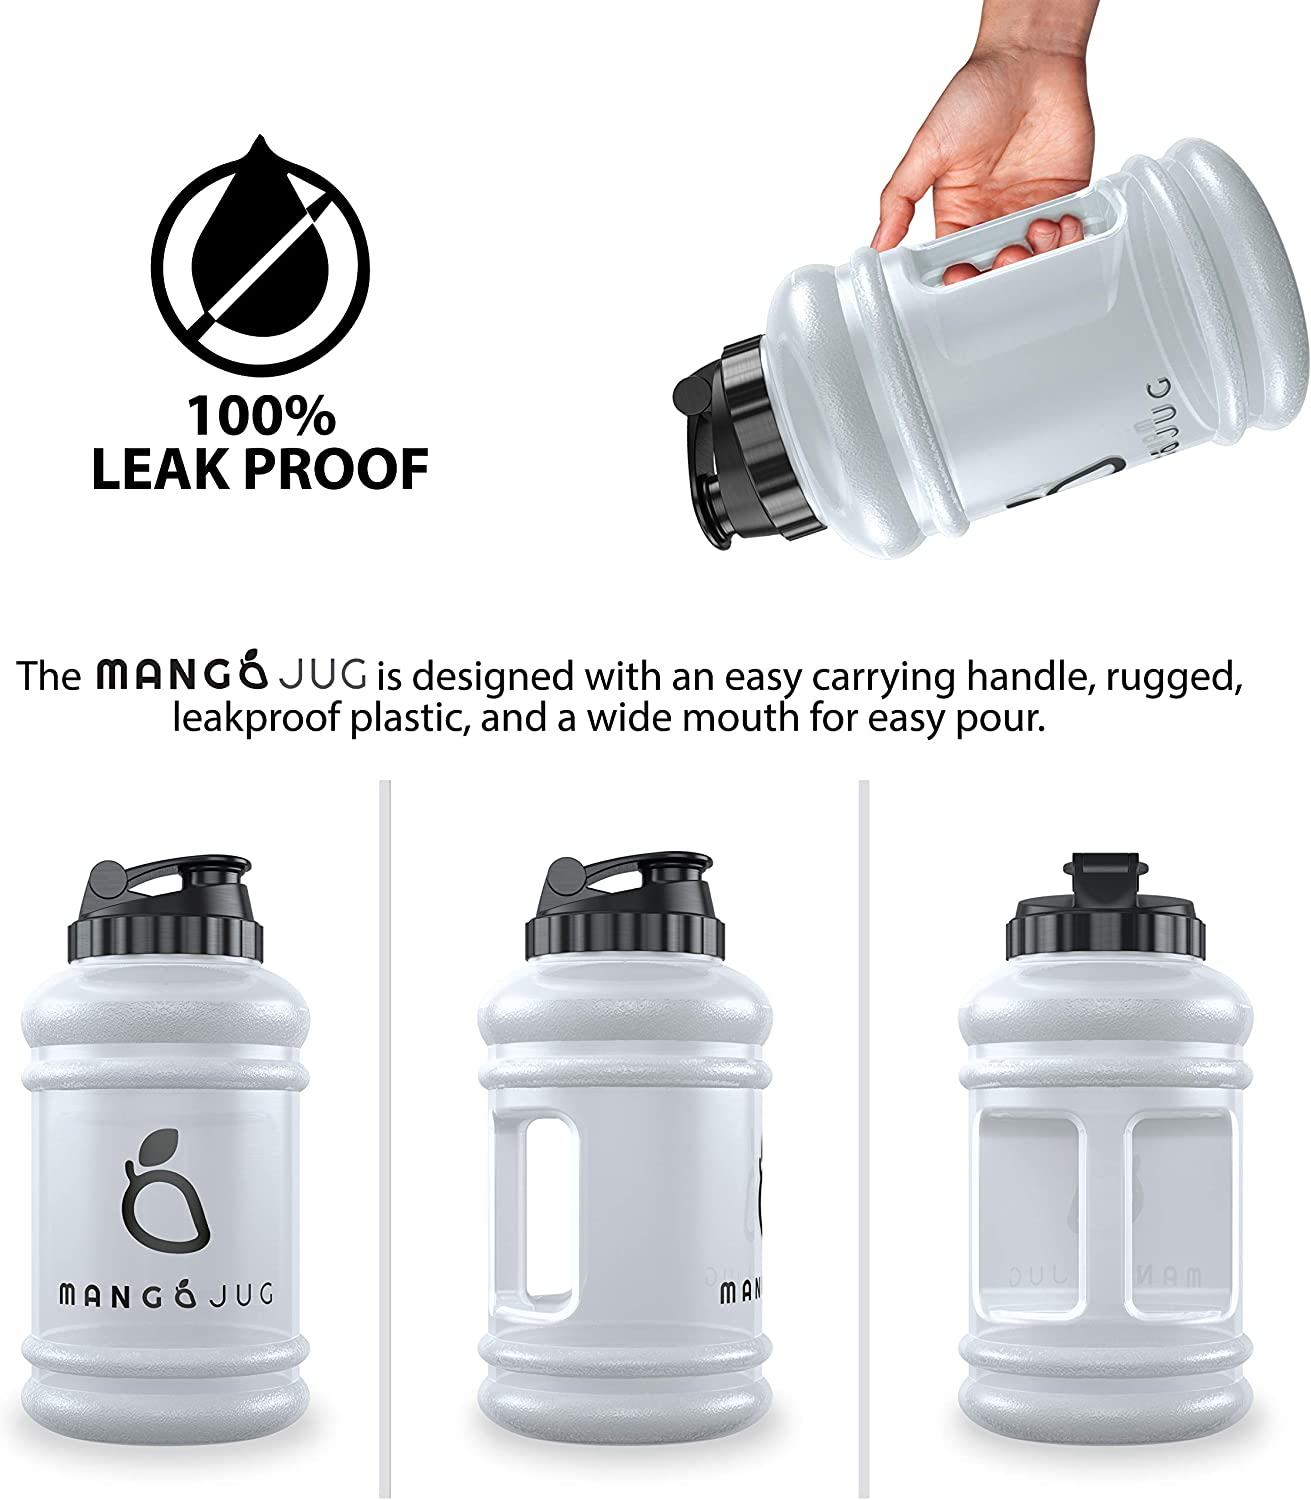 Mango 2.2 Litre Water Bottle Dieting Safe /& BPA Free Durable /& Extra Strong Large Water jug Outdoor Sports Hiking /& Office Bodybuilding Ideal for Sports Gym